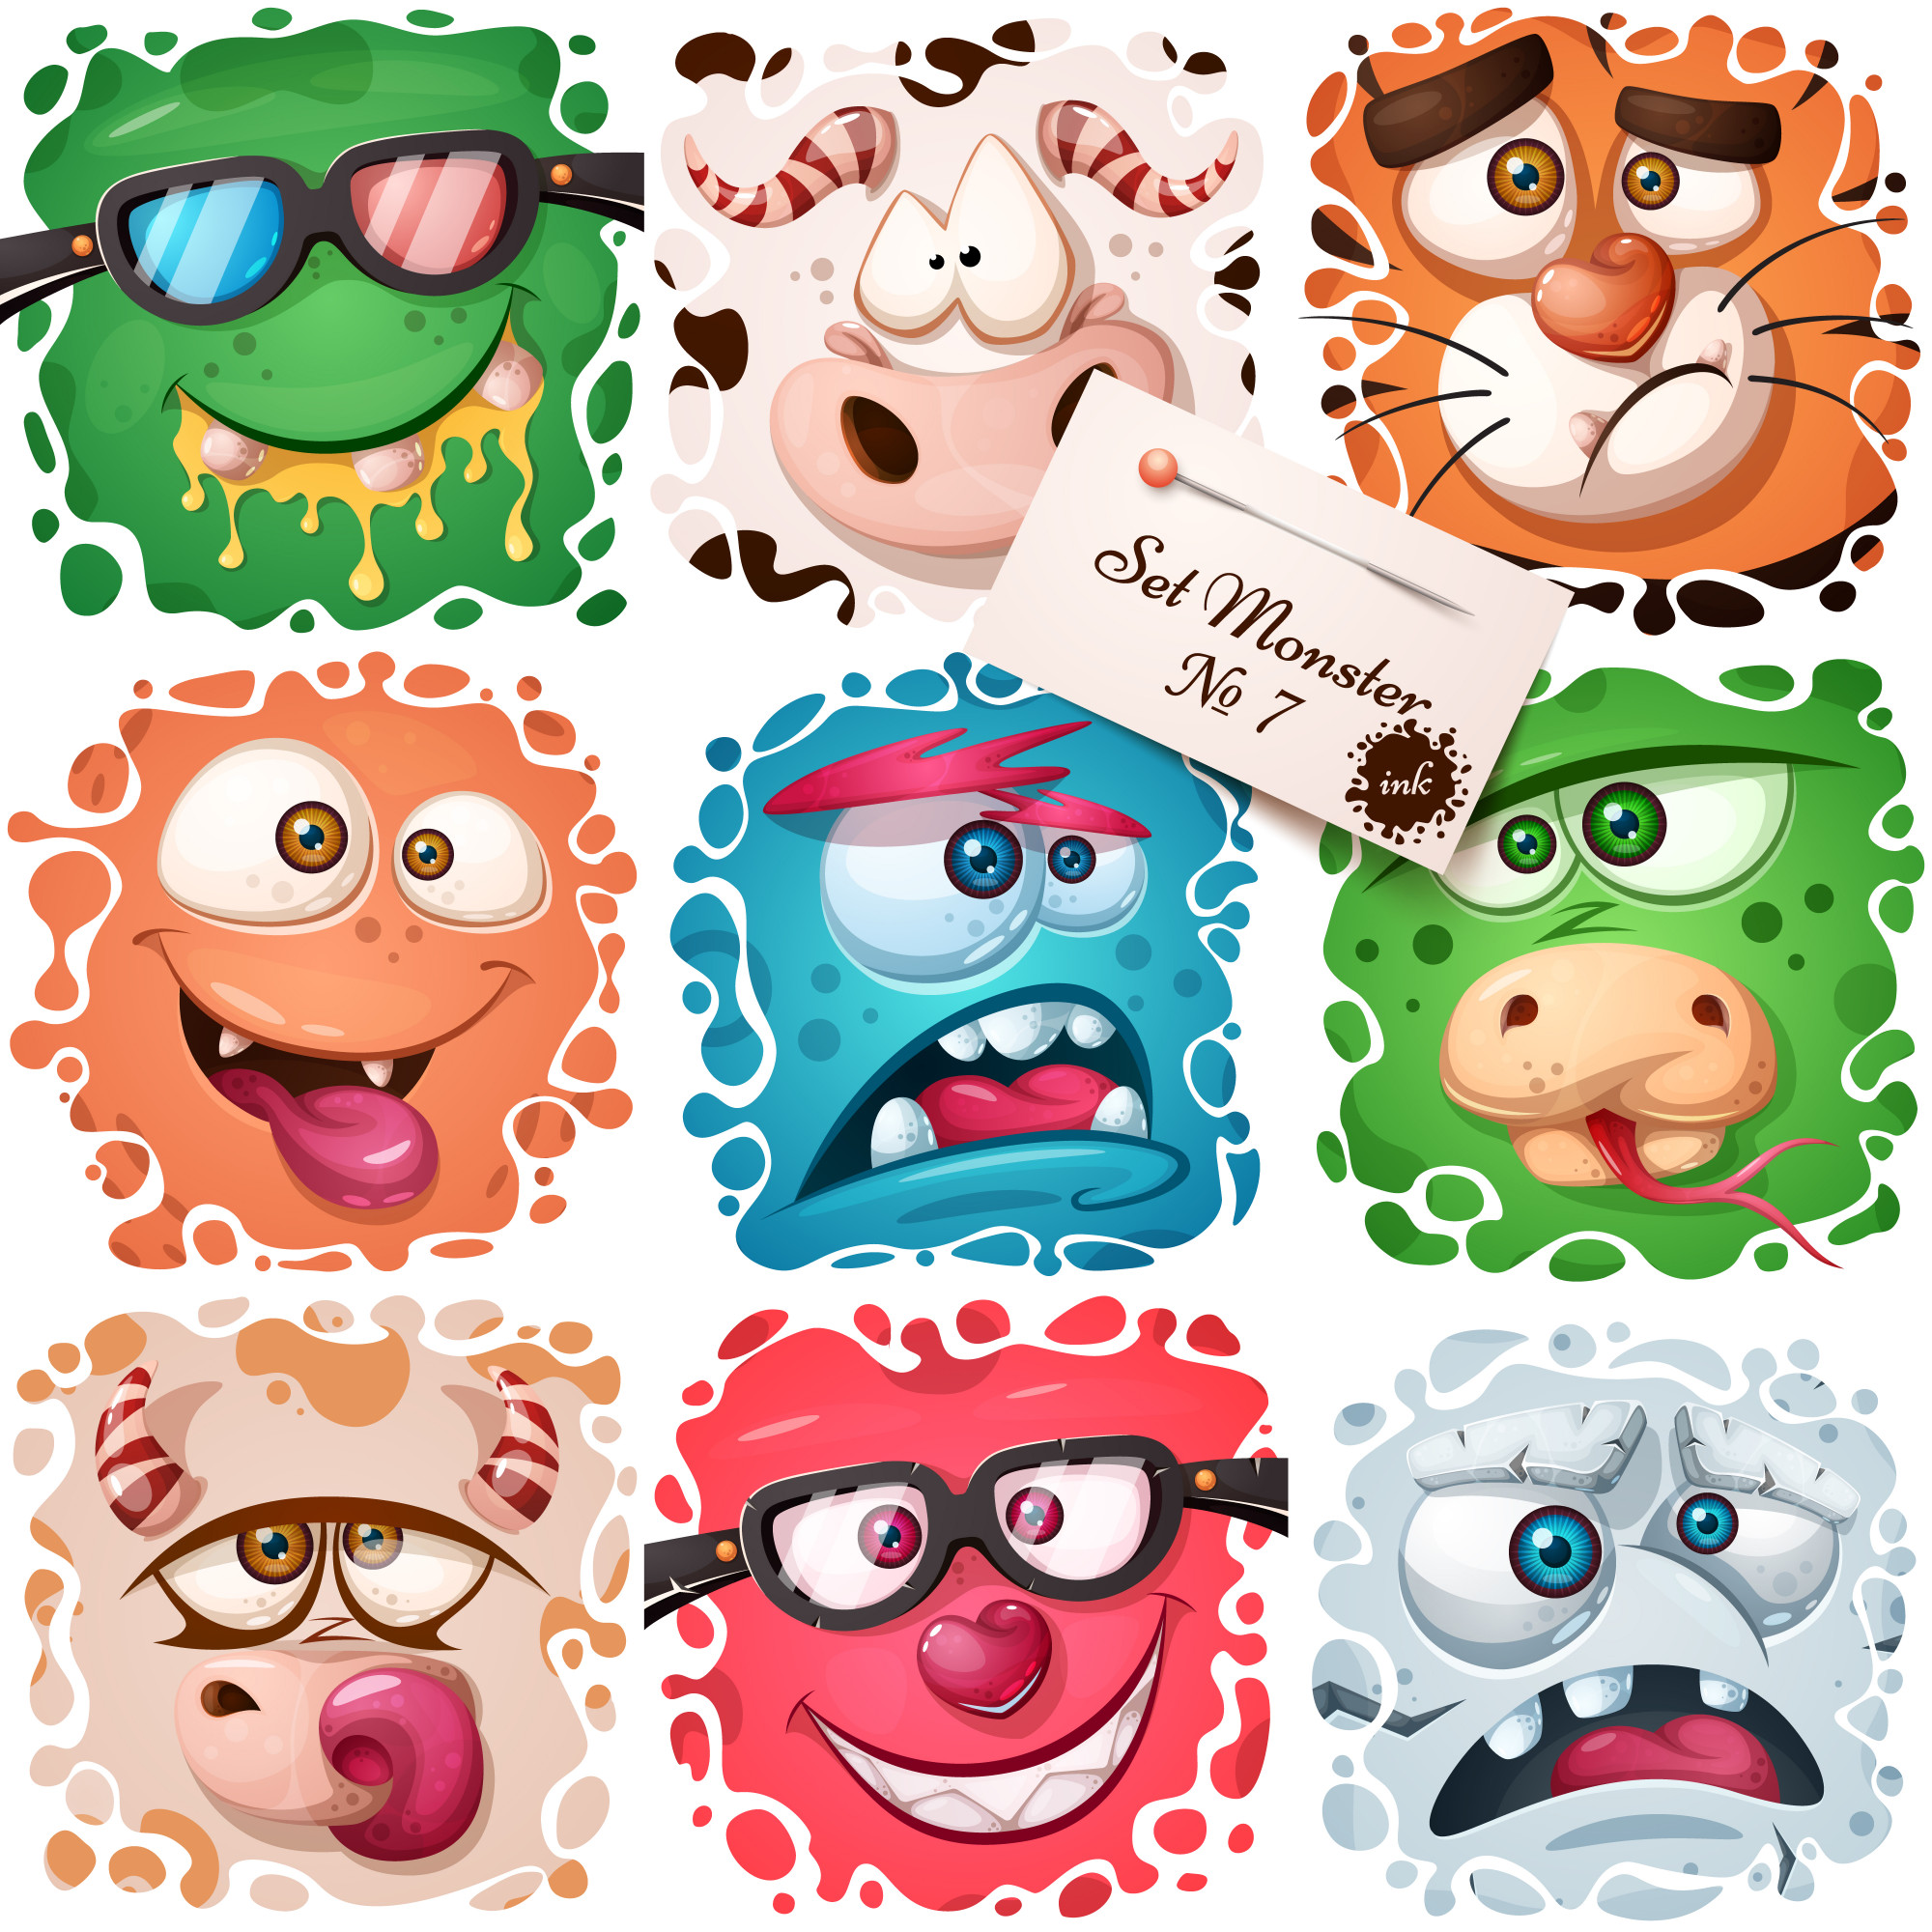 Cute monster characters